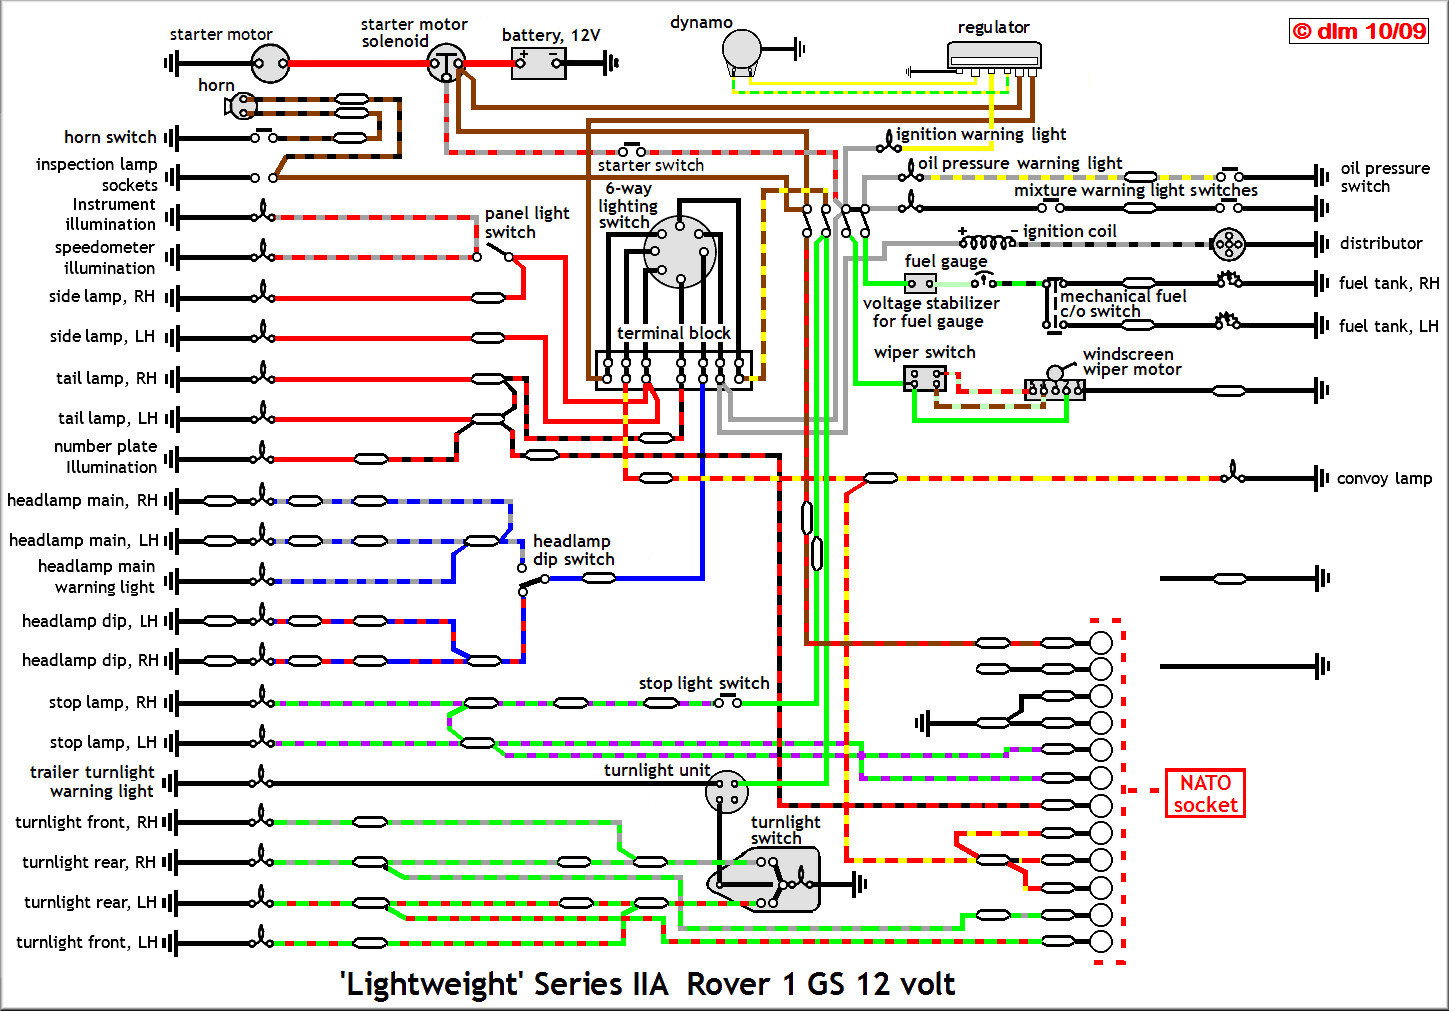 Rover 1 Diagram land rover lightweight land rover series 3 wiring diagram at reclaimingppi.co